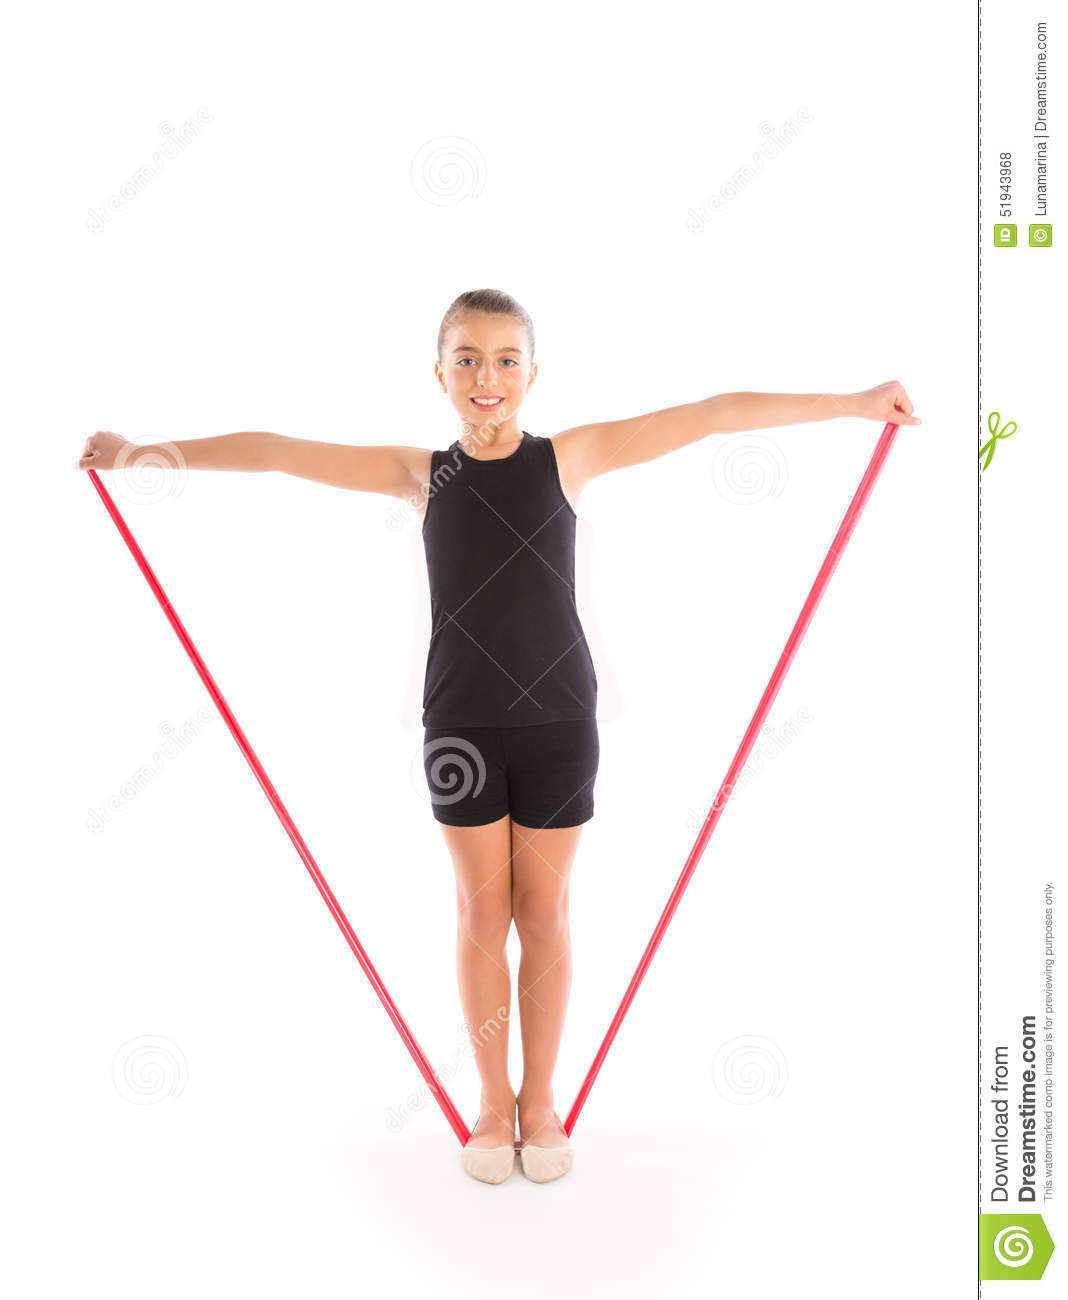 Fitness Rubber Resistance Band Kid Girl Exercise Stock Photo - Image ...